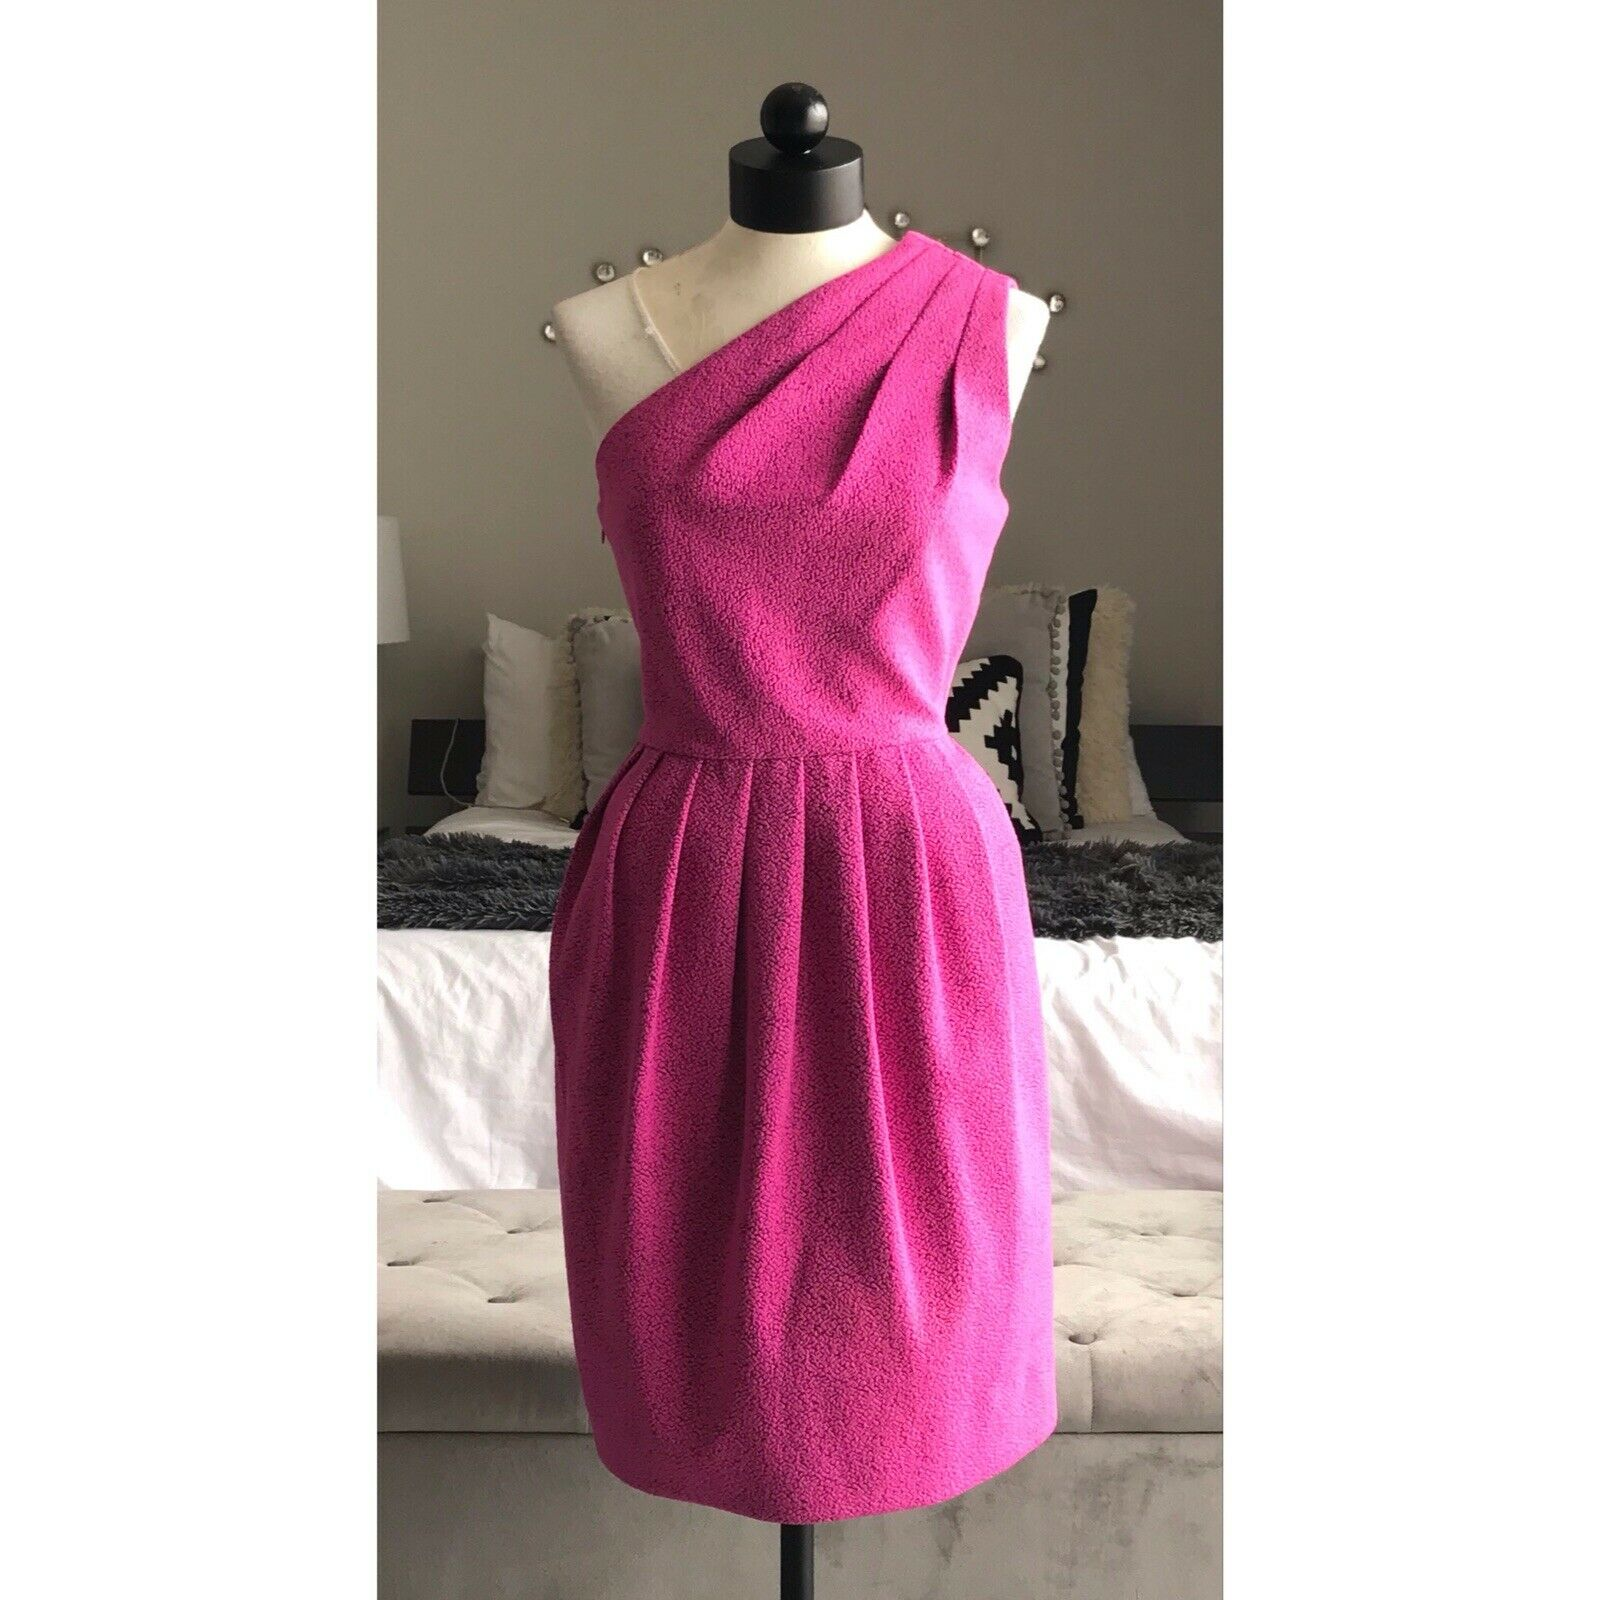 11f8edbd9731 Halston Heritage Women's One-Shoulder Textured Pleated Pink Dress Size 4